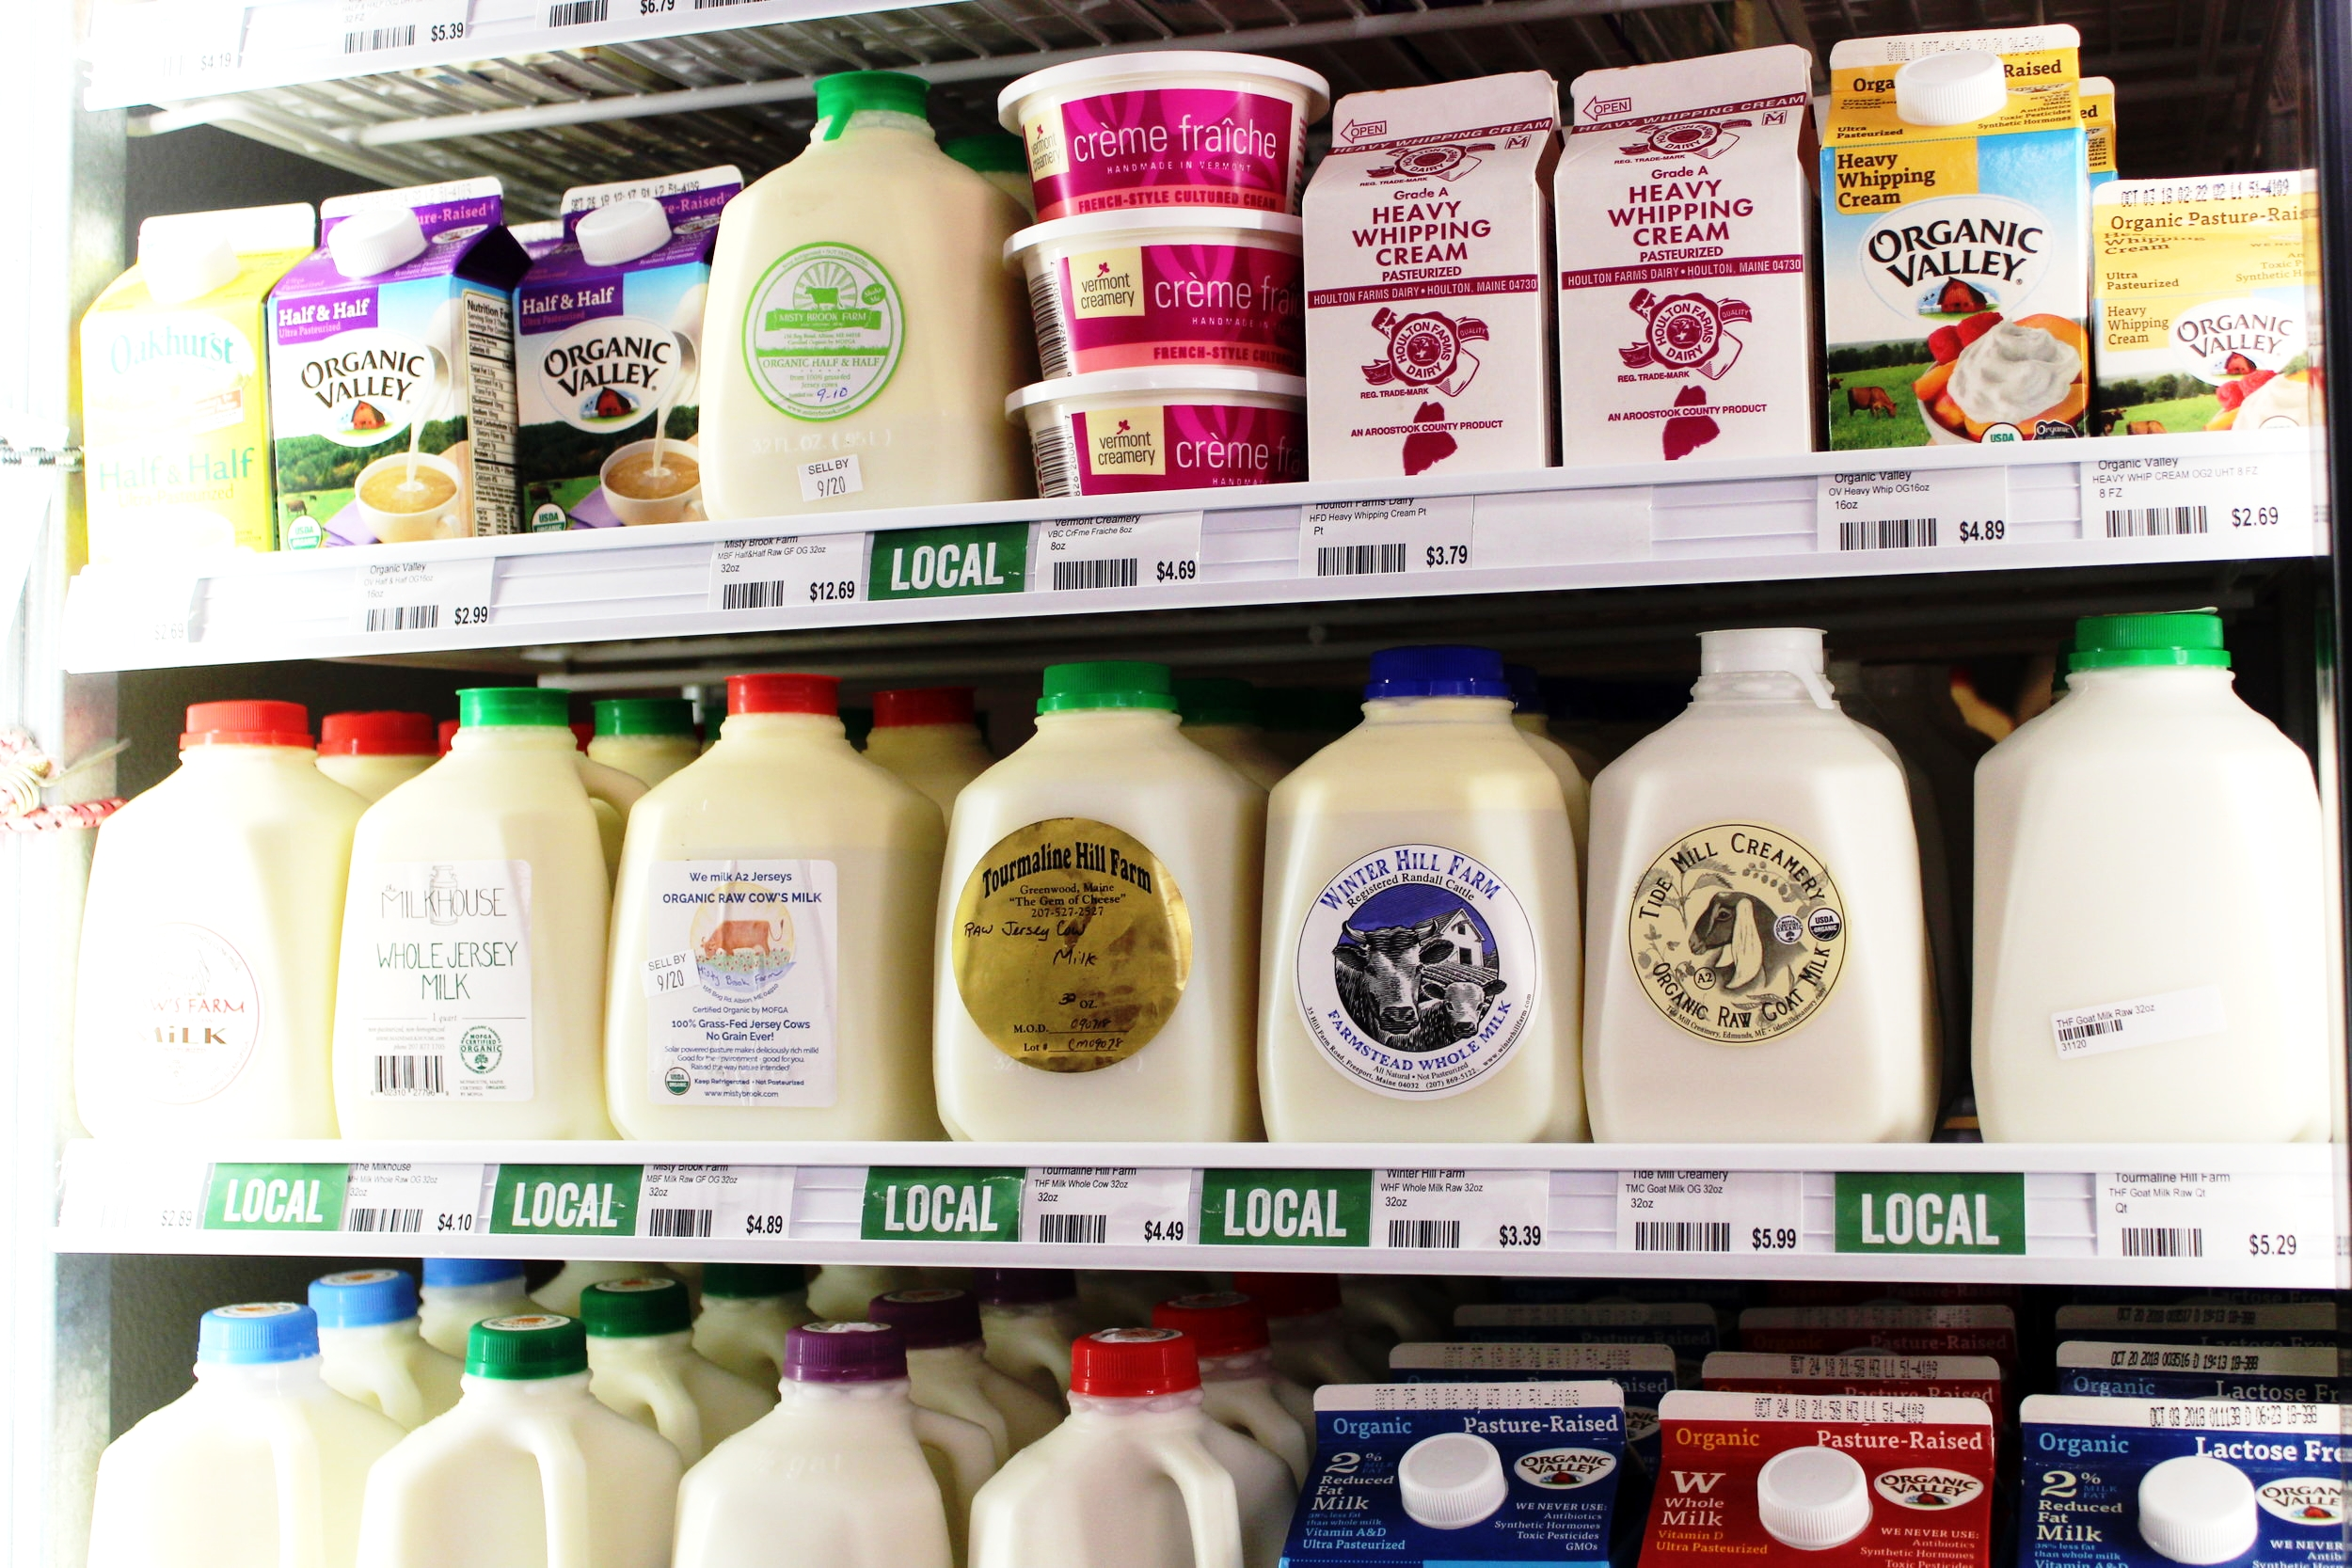 Meat & Dairy - We are incredibly proud of our dairy selection, which has products, including raw milk, from over a dozen local farmers. Lots of local farms are represented in our egg and meat sections as well.